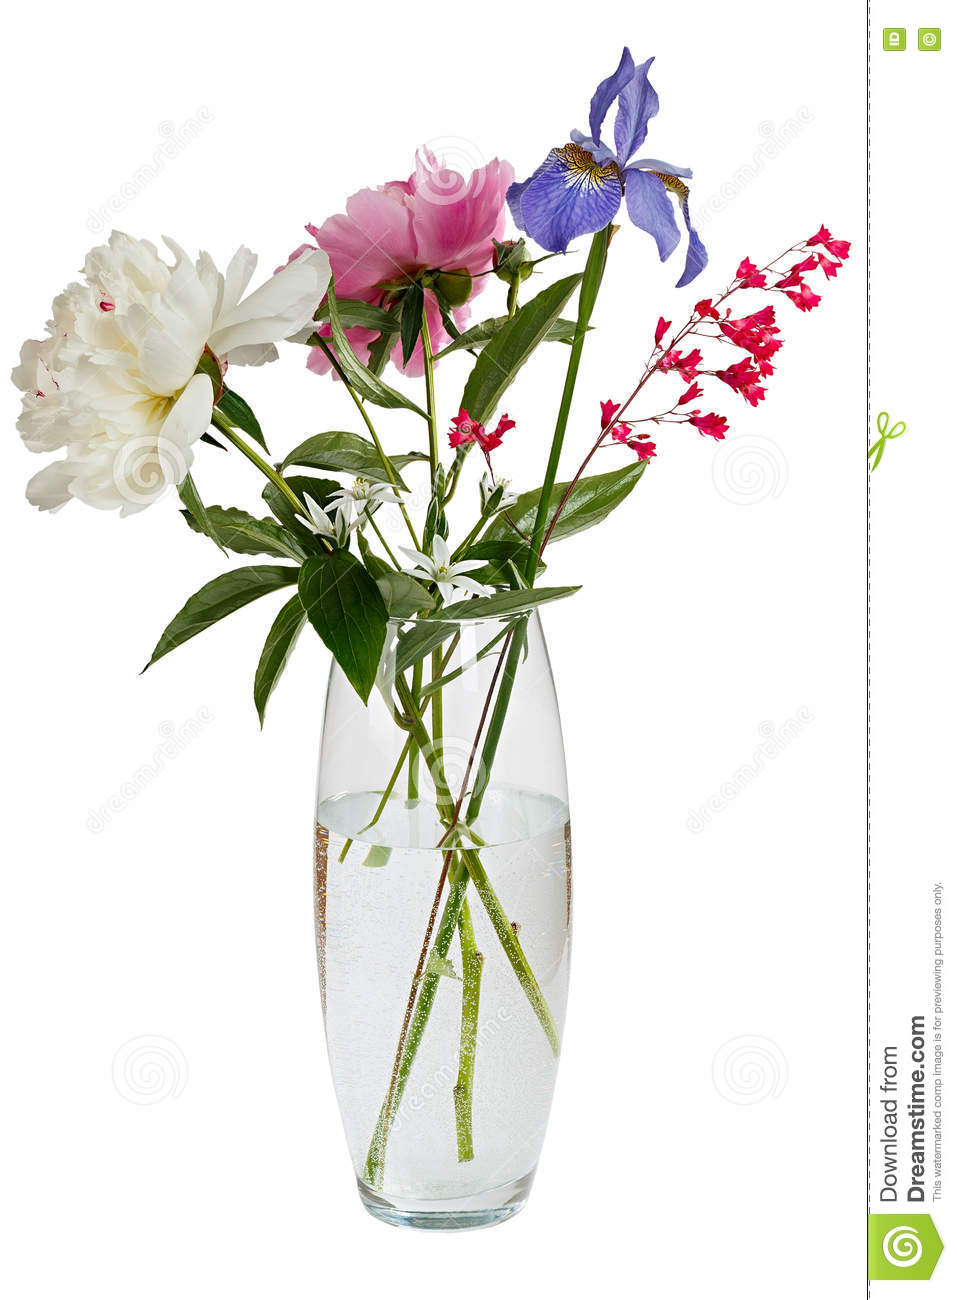 Fleur dans vase transparent fashion designs for Bouquet de fleurs 974